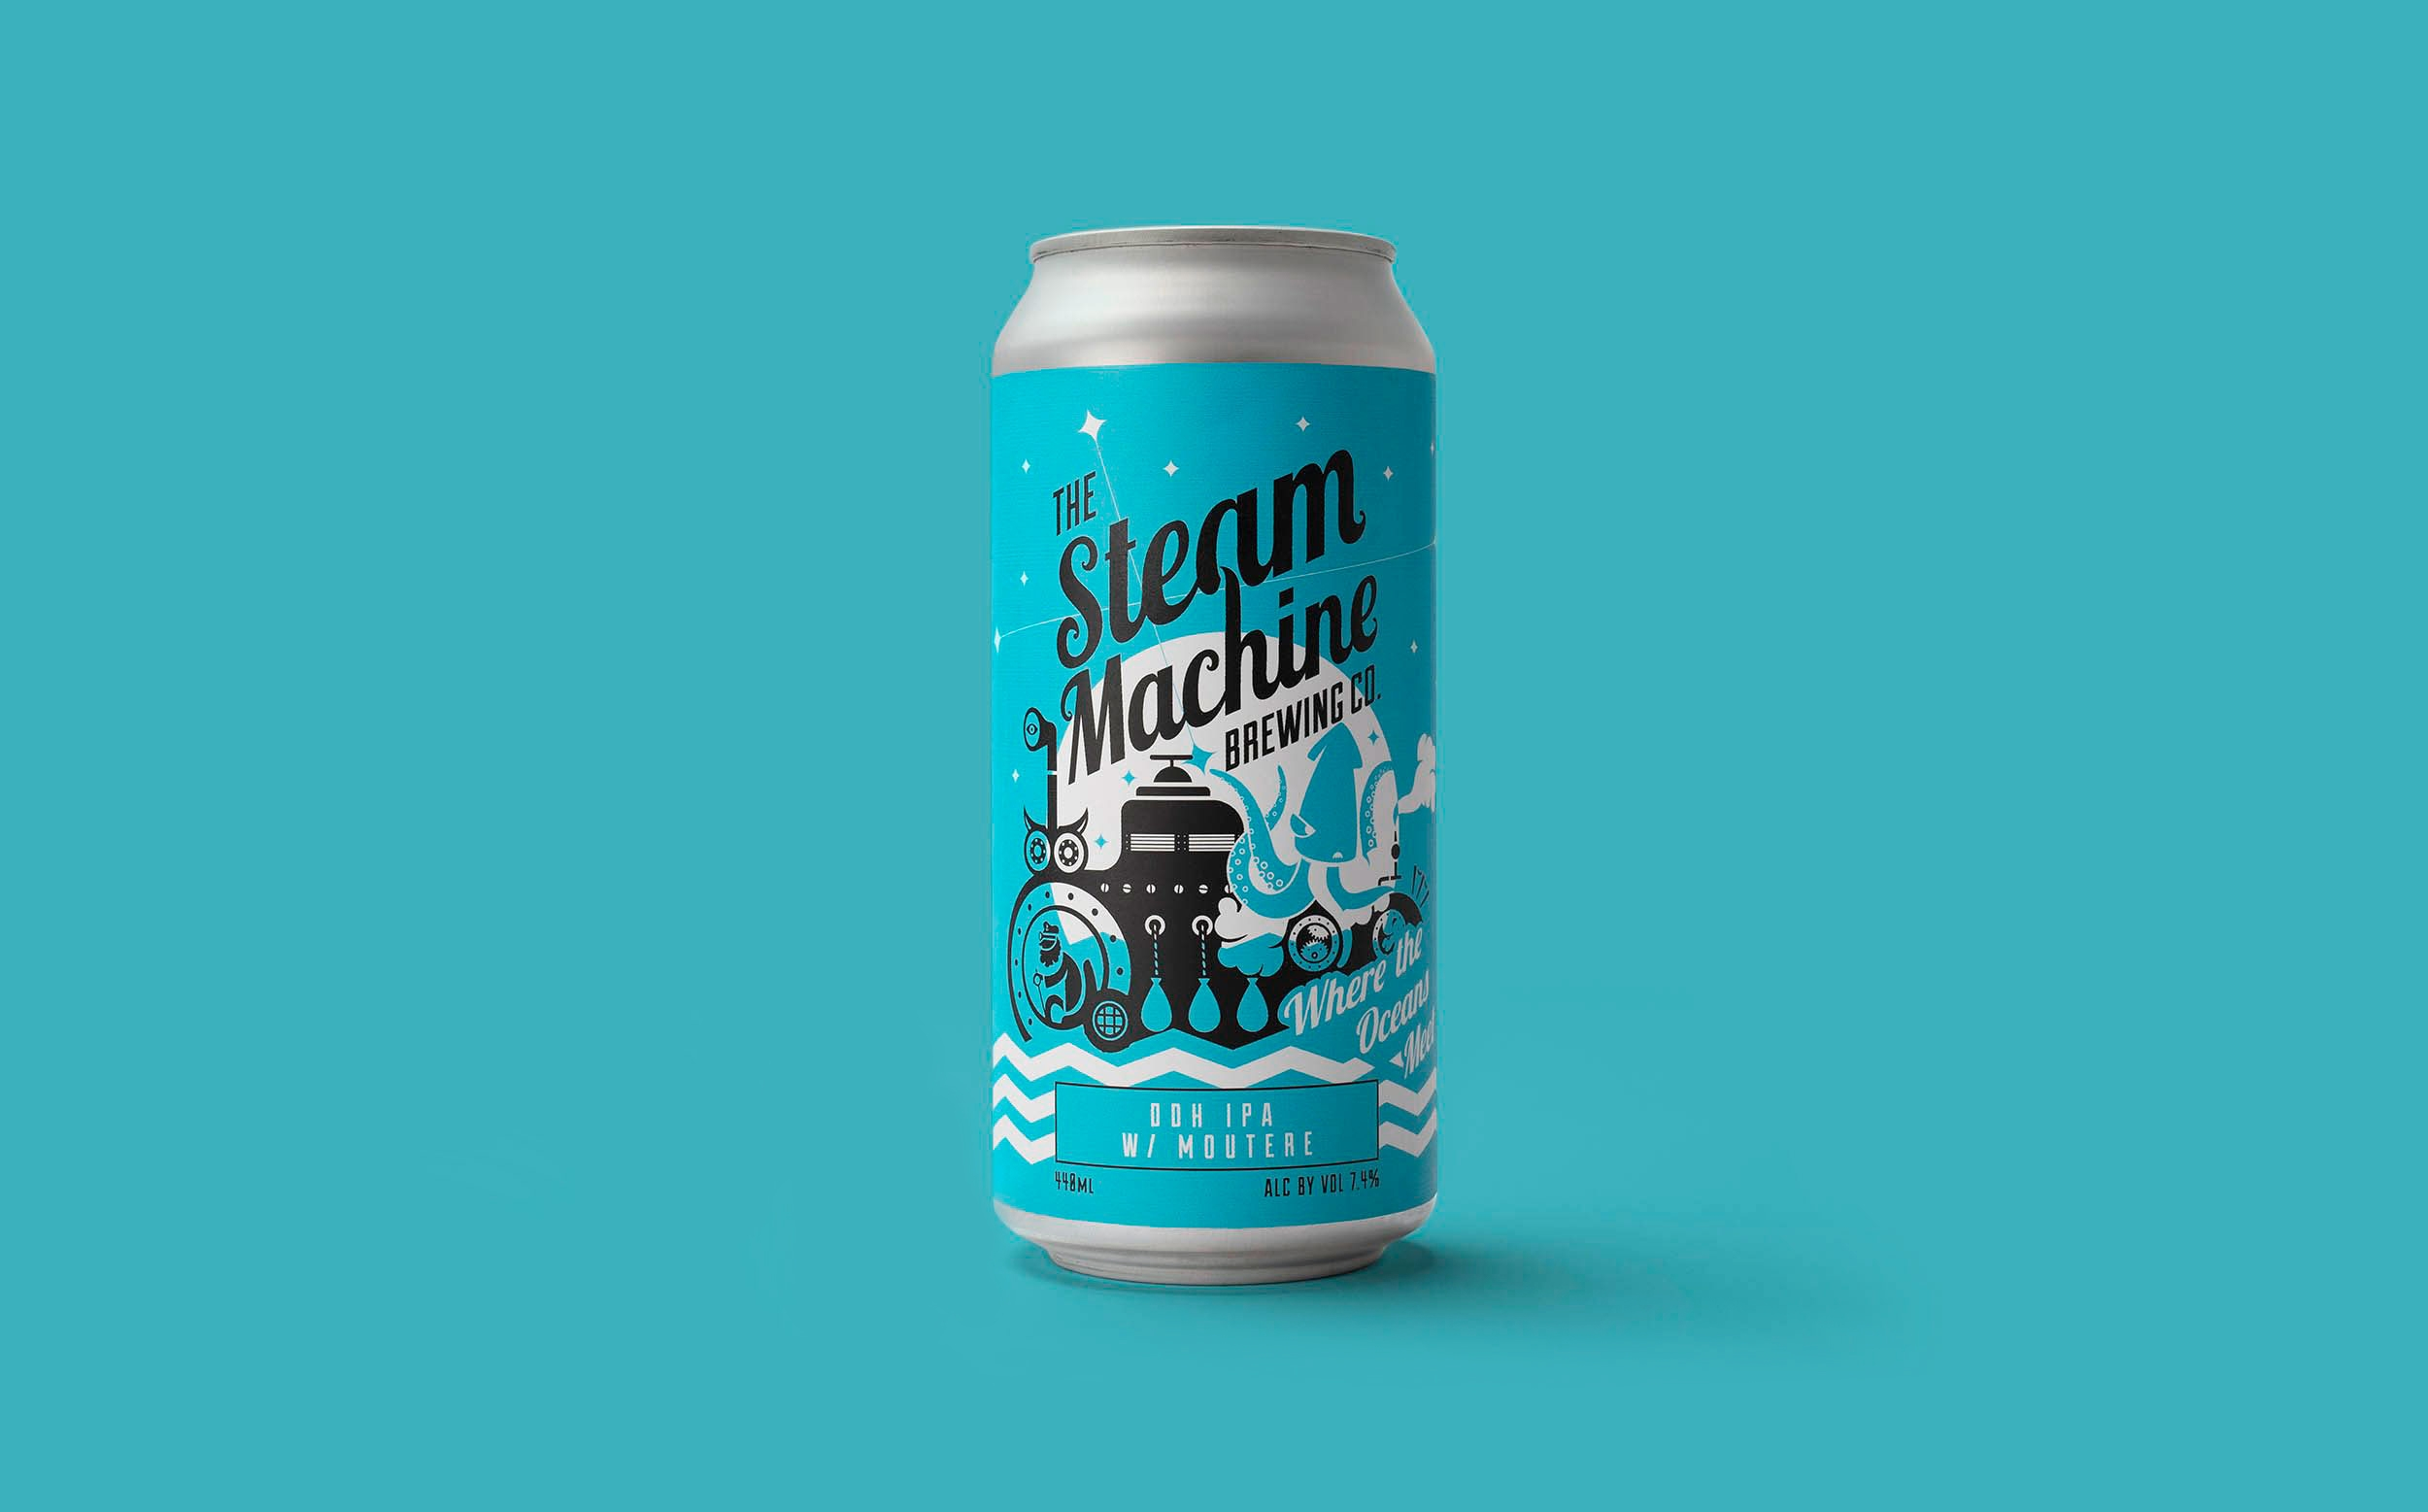 Craft beer branding, craft beer packaging and illustration for Steam Machine Brewing by Altogether Creative.